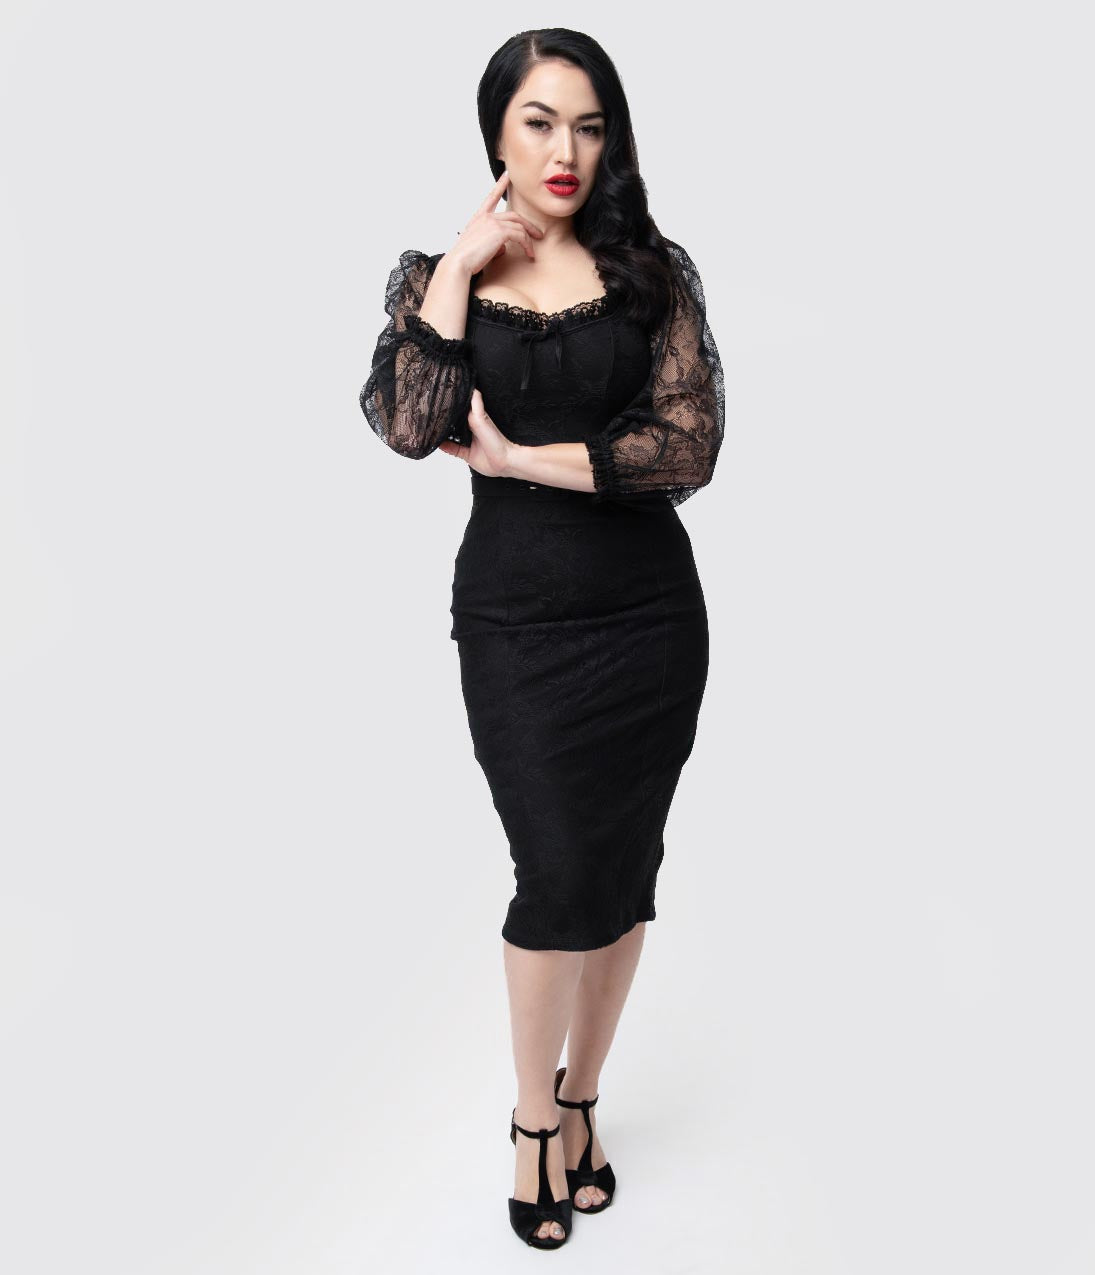 1930s Dresses | 30s Art Deco Dress Vixen By Micheline Pitt Black Lace Decadence Wiggle Dress $166.00 AT vintagedancer.com